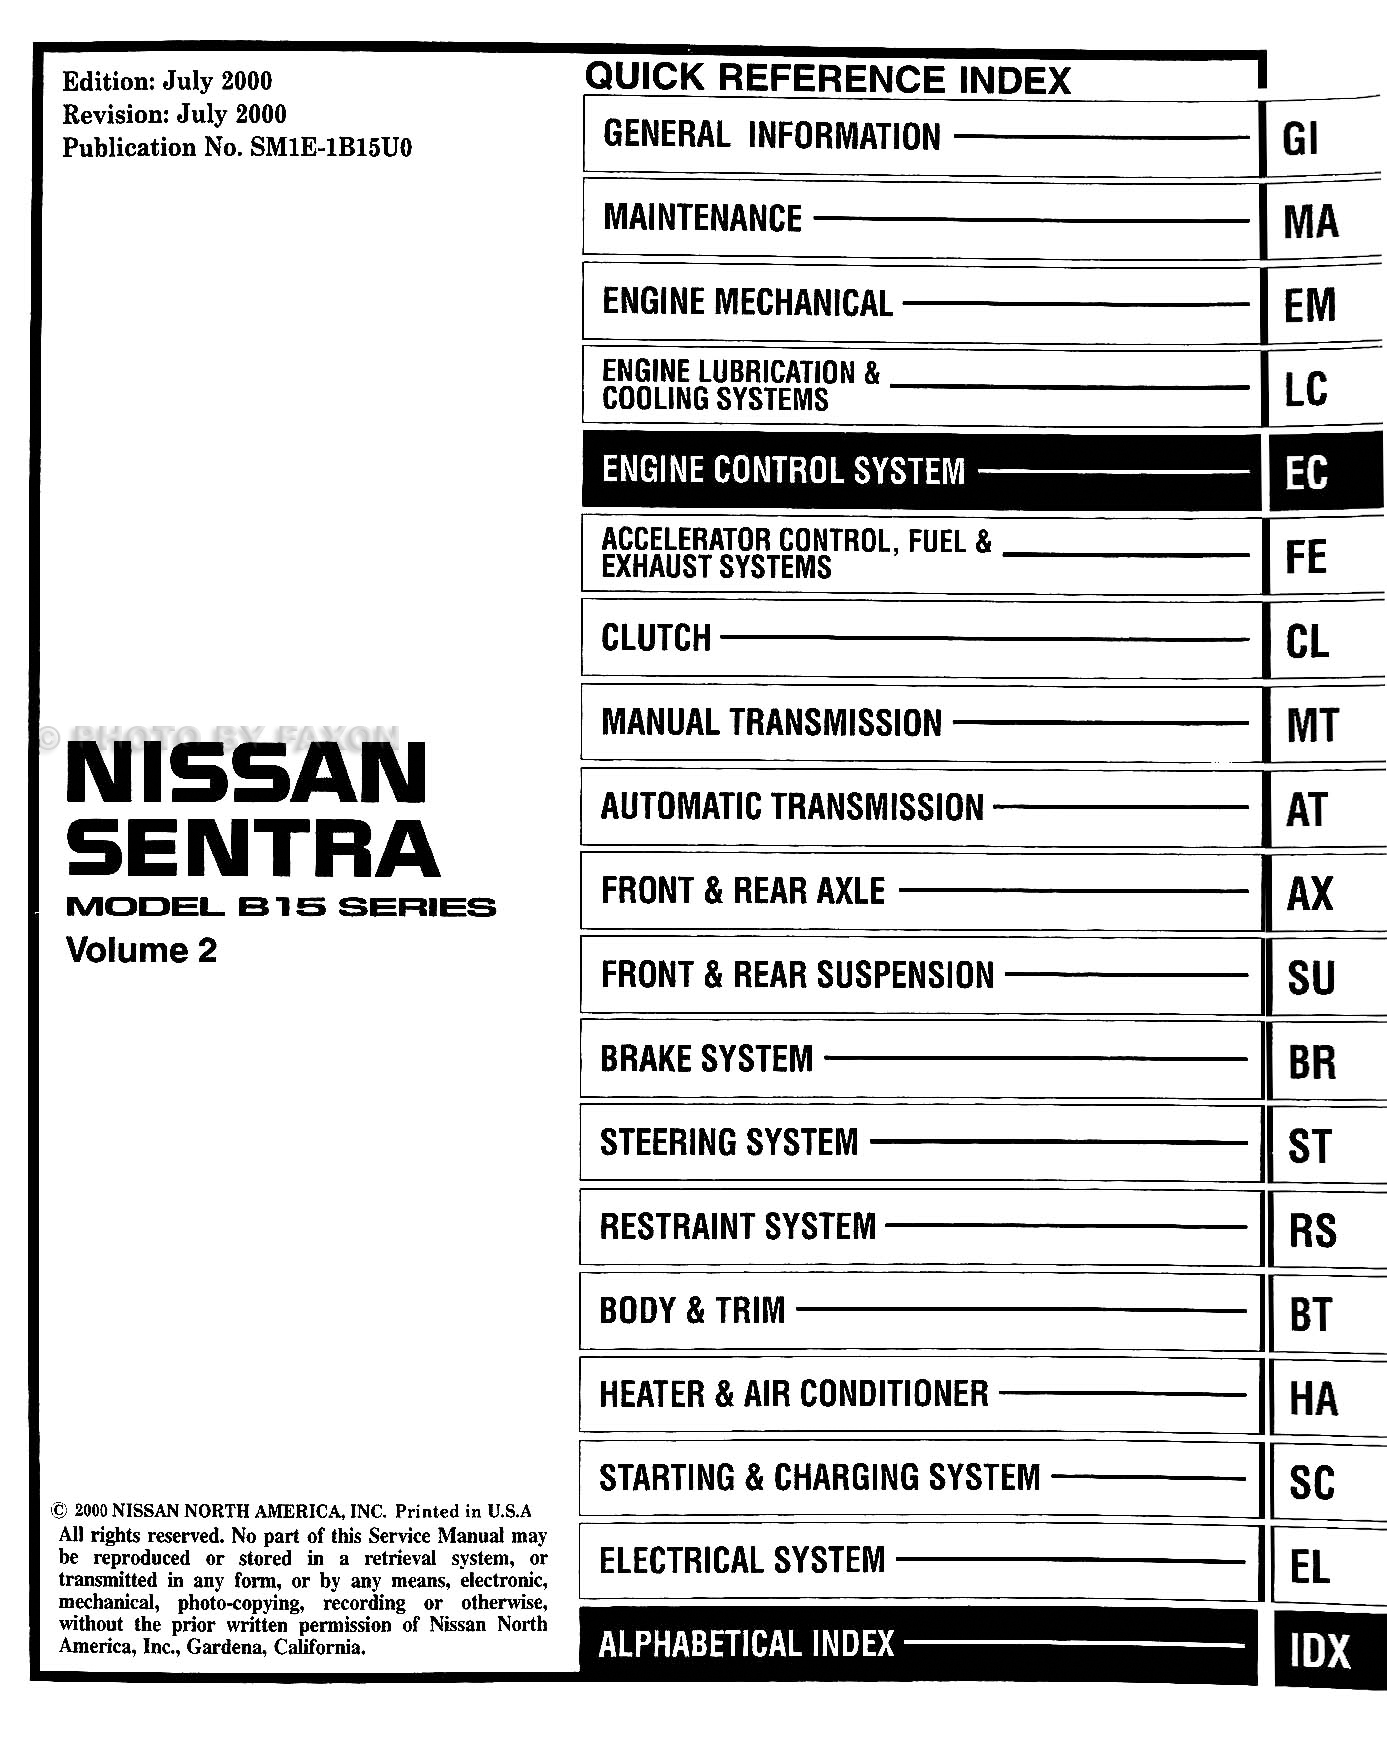 2001 nissan sentra wiring diagram trailer light 6 pin cd rom repair shop manual